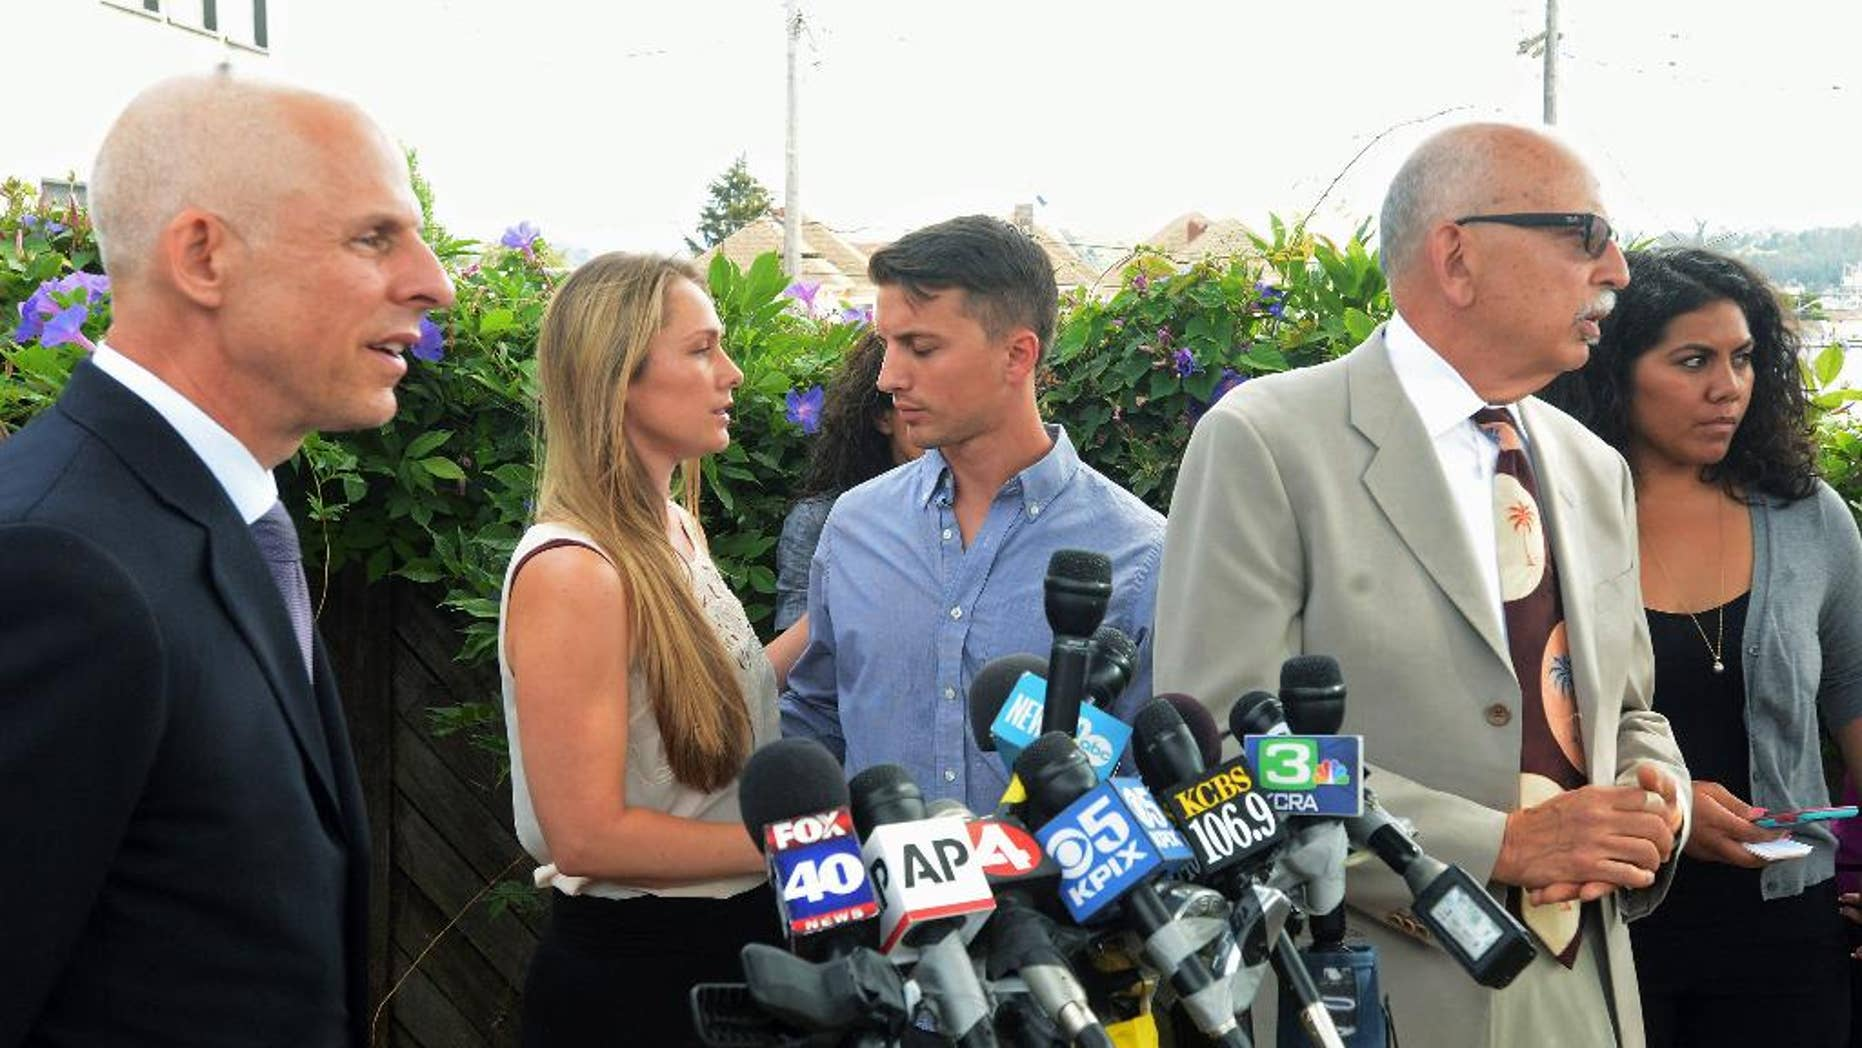 Denise Huskins, second from left, and her boyfriend, Aaron Quinn, turn to each other at the end of a news conference on Monday, July 13, 2015, in Vallejo, Calif. At left is Huskins' attorney, Douglas Rappaport and second from right is Quinn's attorney, Daniel Russo. The lawyers for the couple in the kidnap-for-ransom case that police called a hoax are blasting investigators and asking that authorities set the record straight. (Mike Jory/Vallejo Times-Herald via AP)